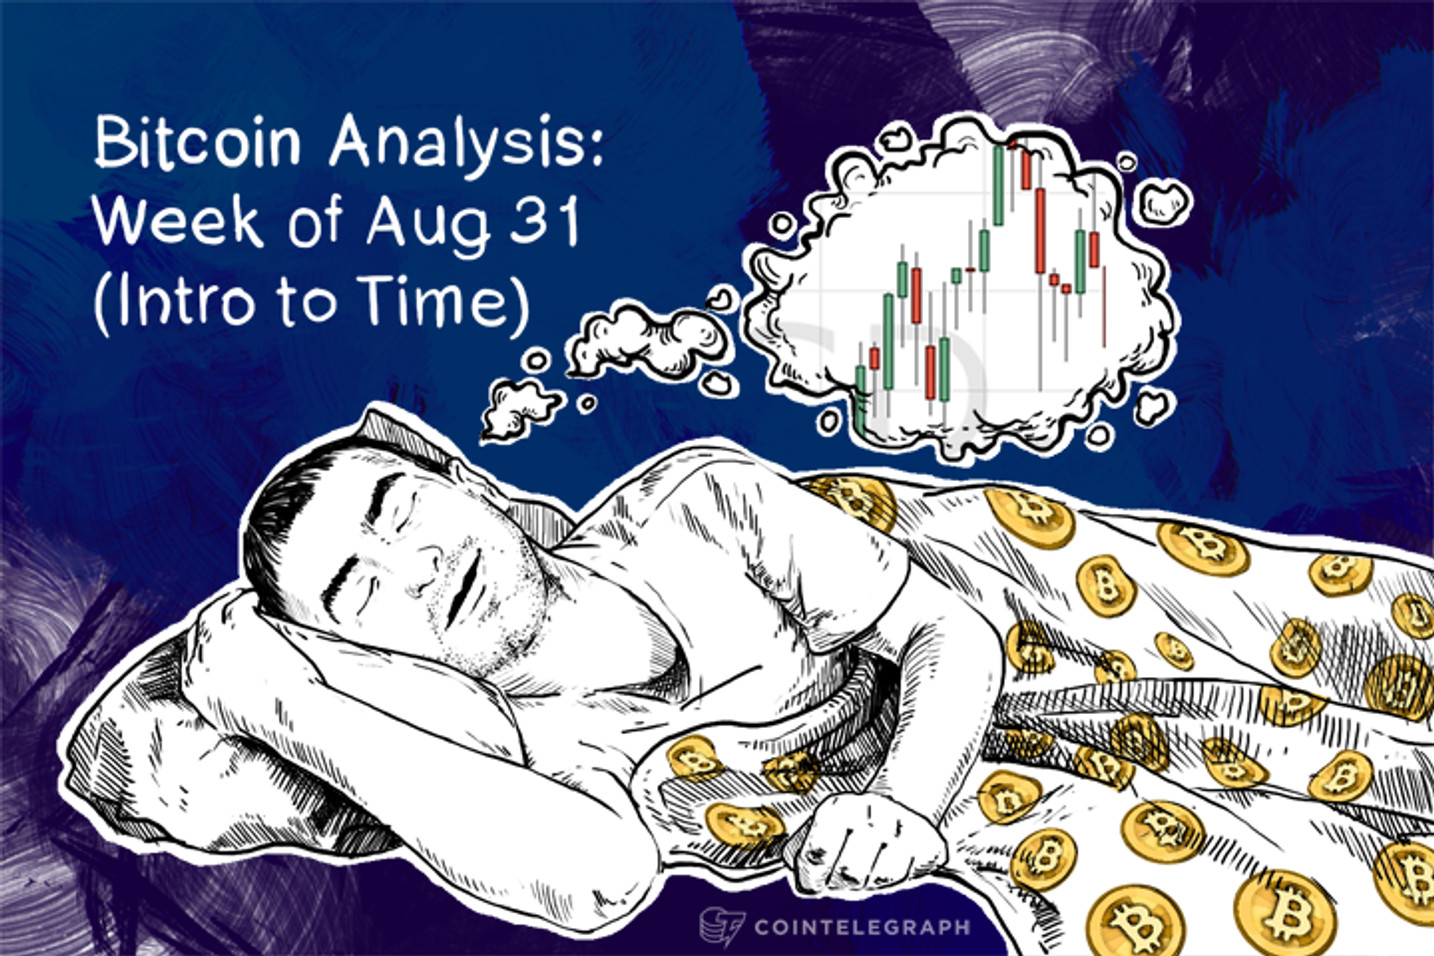 Bitcoin Analysis: Week of Aug 31 (Intro to Time)